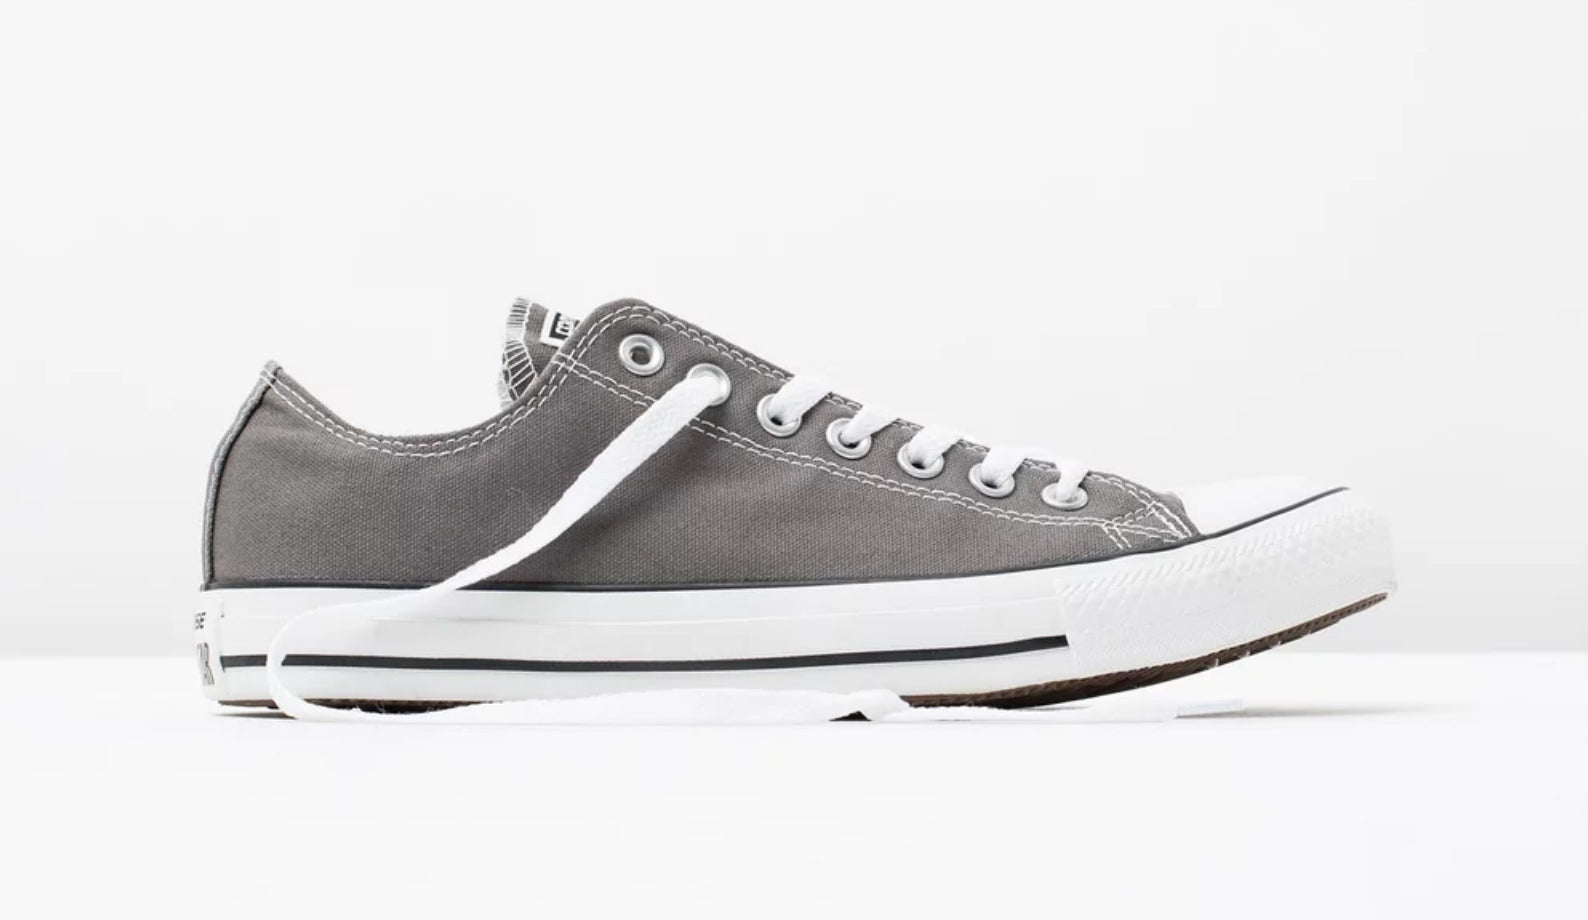 Converse - Grey low sneakers shoes